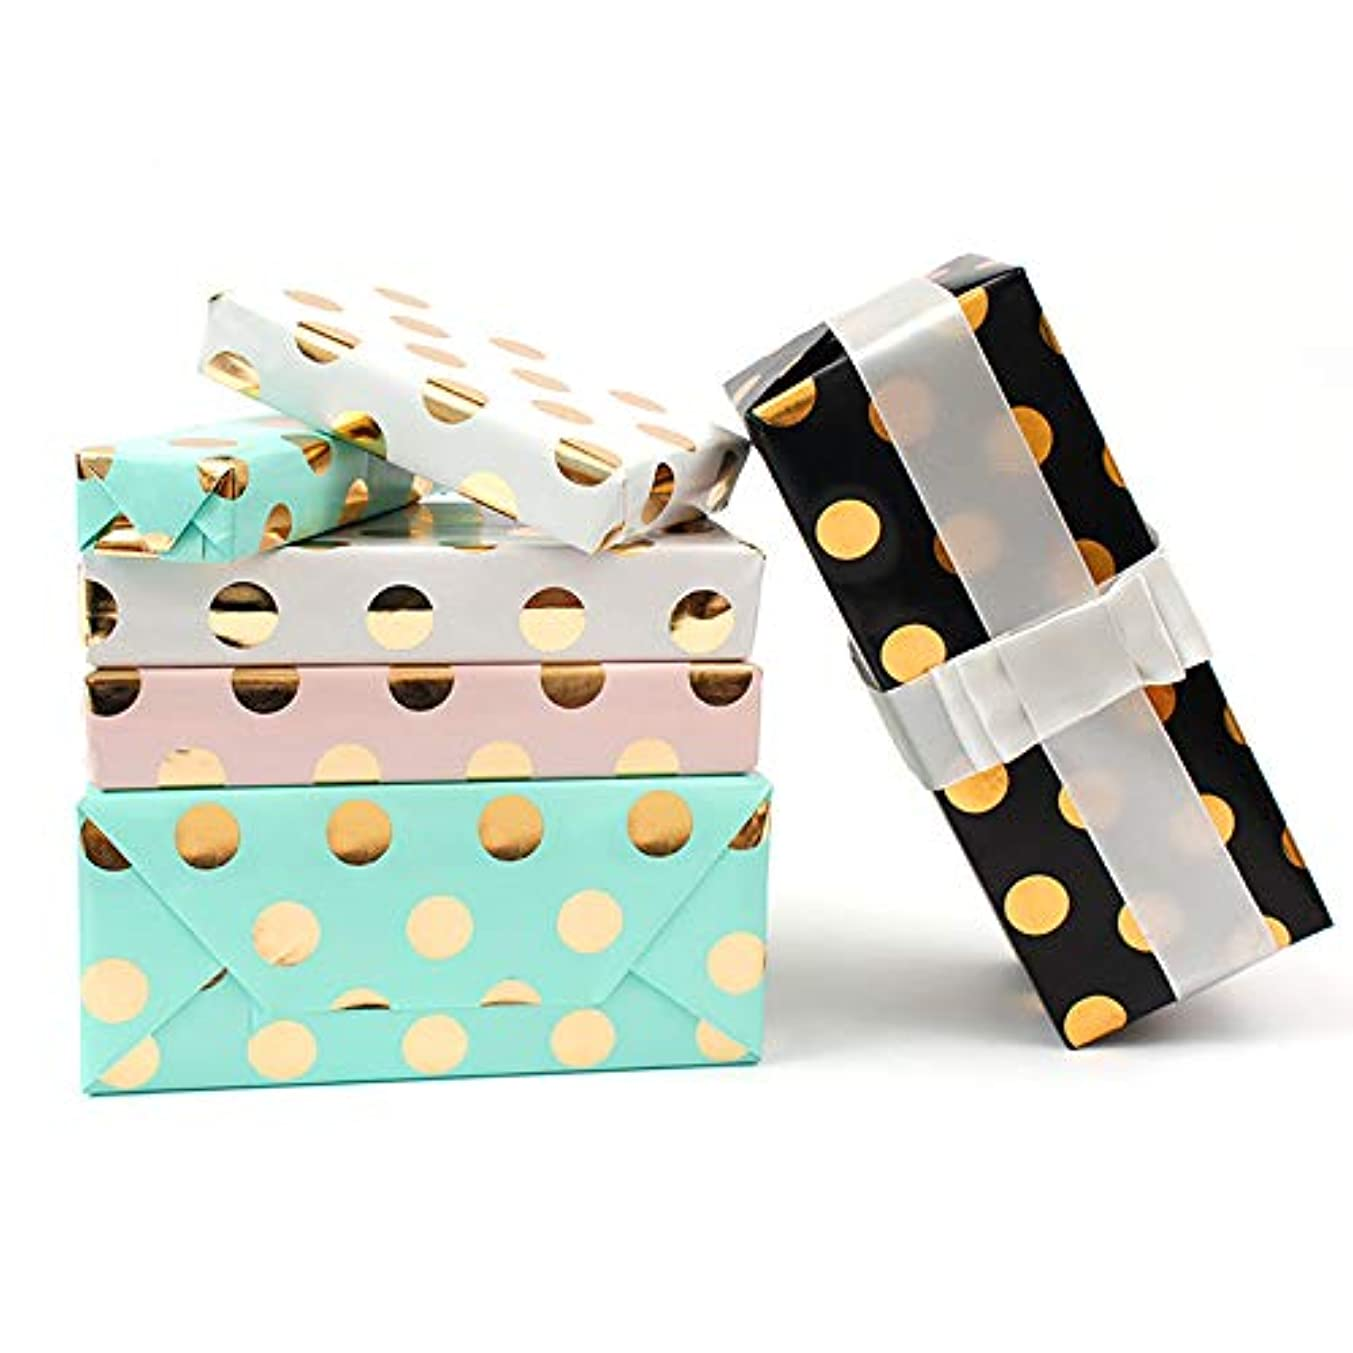 Gift Wrapping Paper Roll-Pink/Green/White/Black (Gold foil Polka dots) - 4 Roll - 27.6